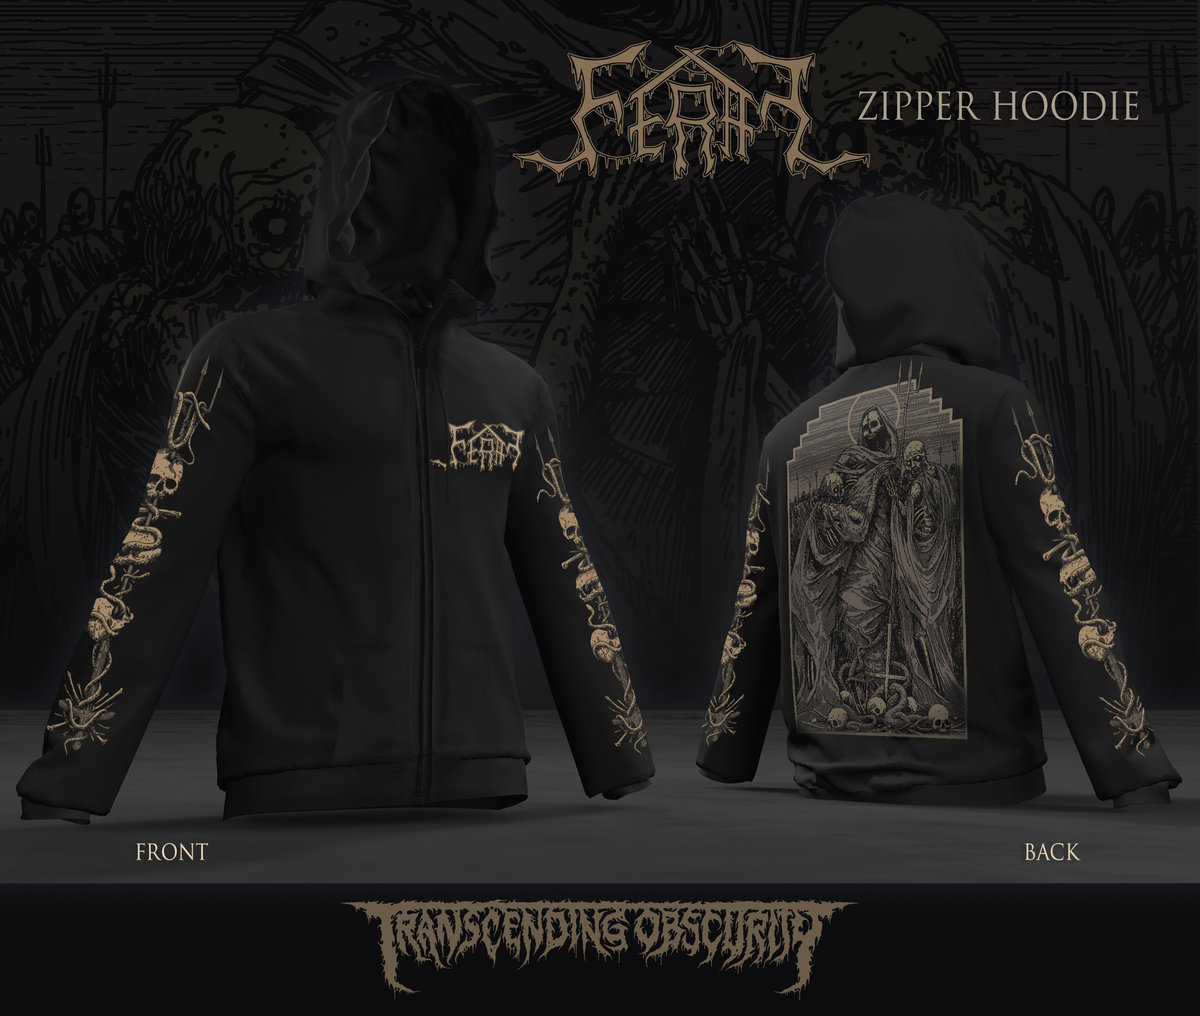 FERAL Zipped Hoodie (Front, black and sleeve prints x 2)